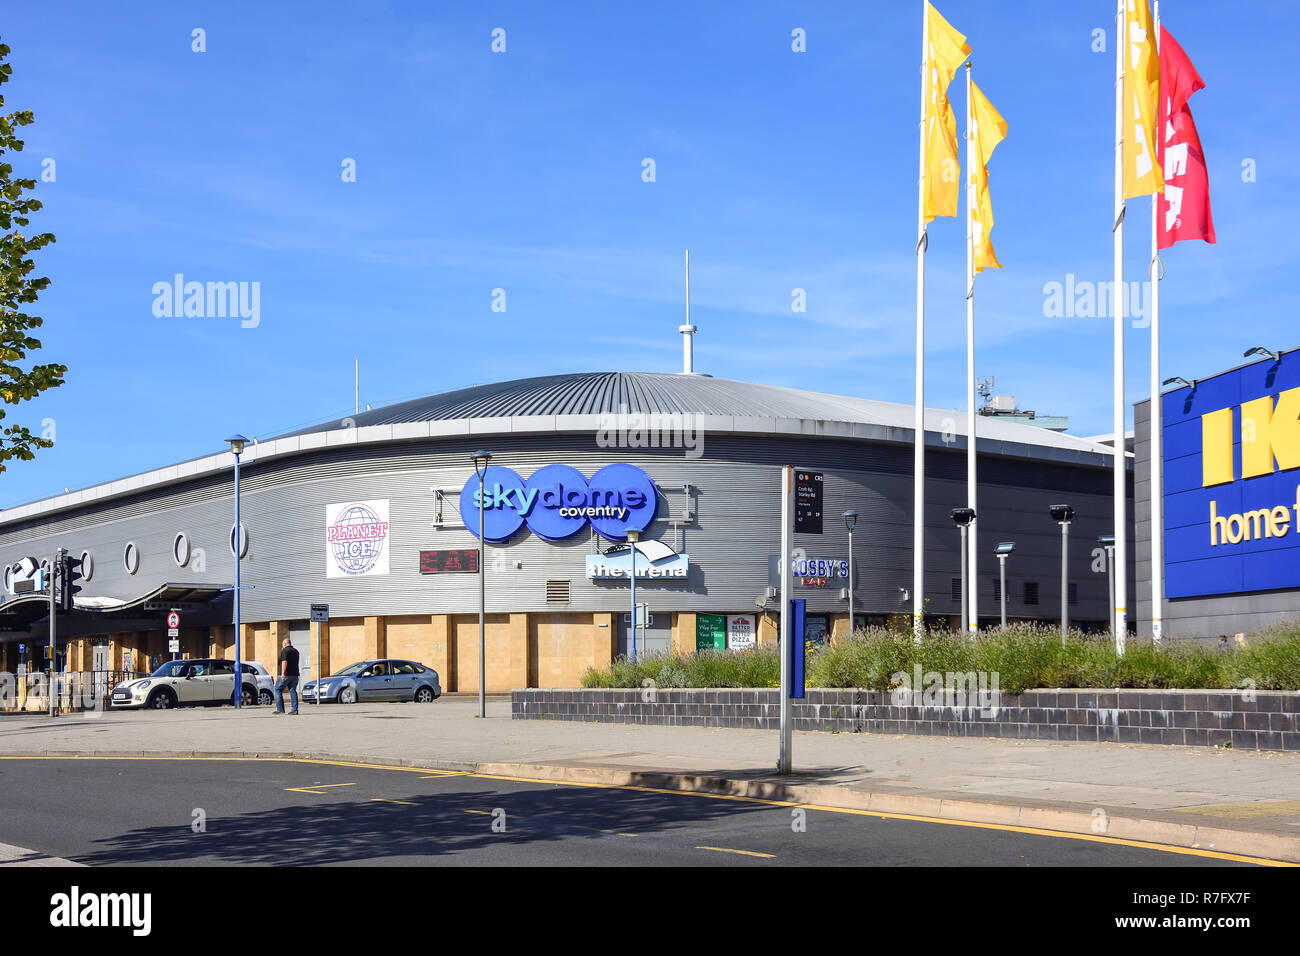 Skydome Coventry leisure and entertainment venue, Croft Road, Coventry, West Midlands, England, United Kingdom - Stock Image